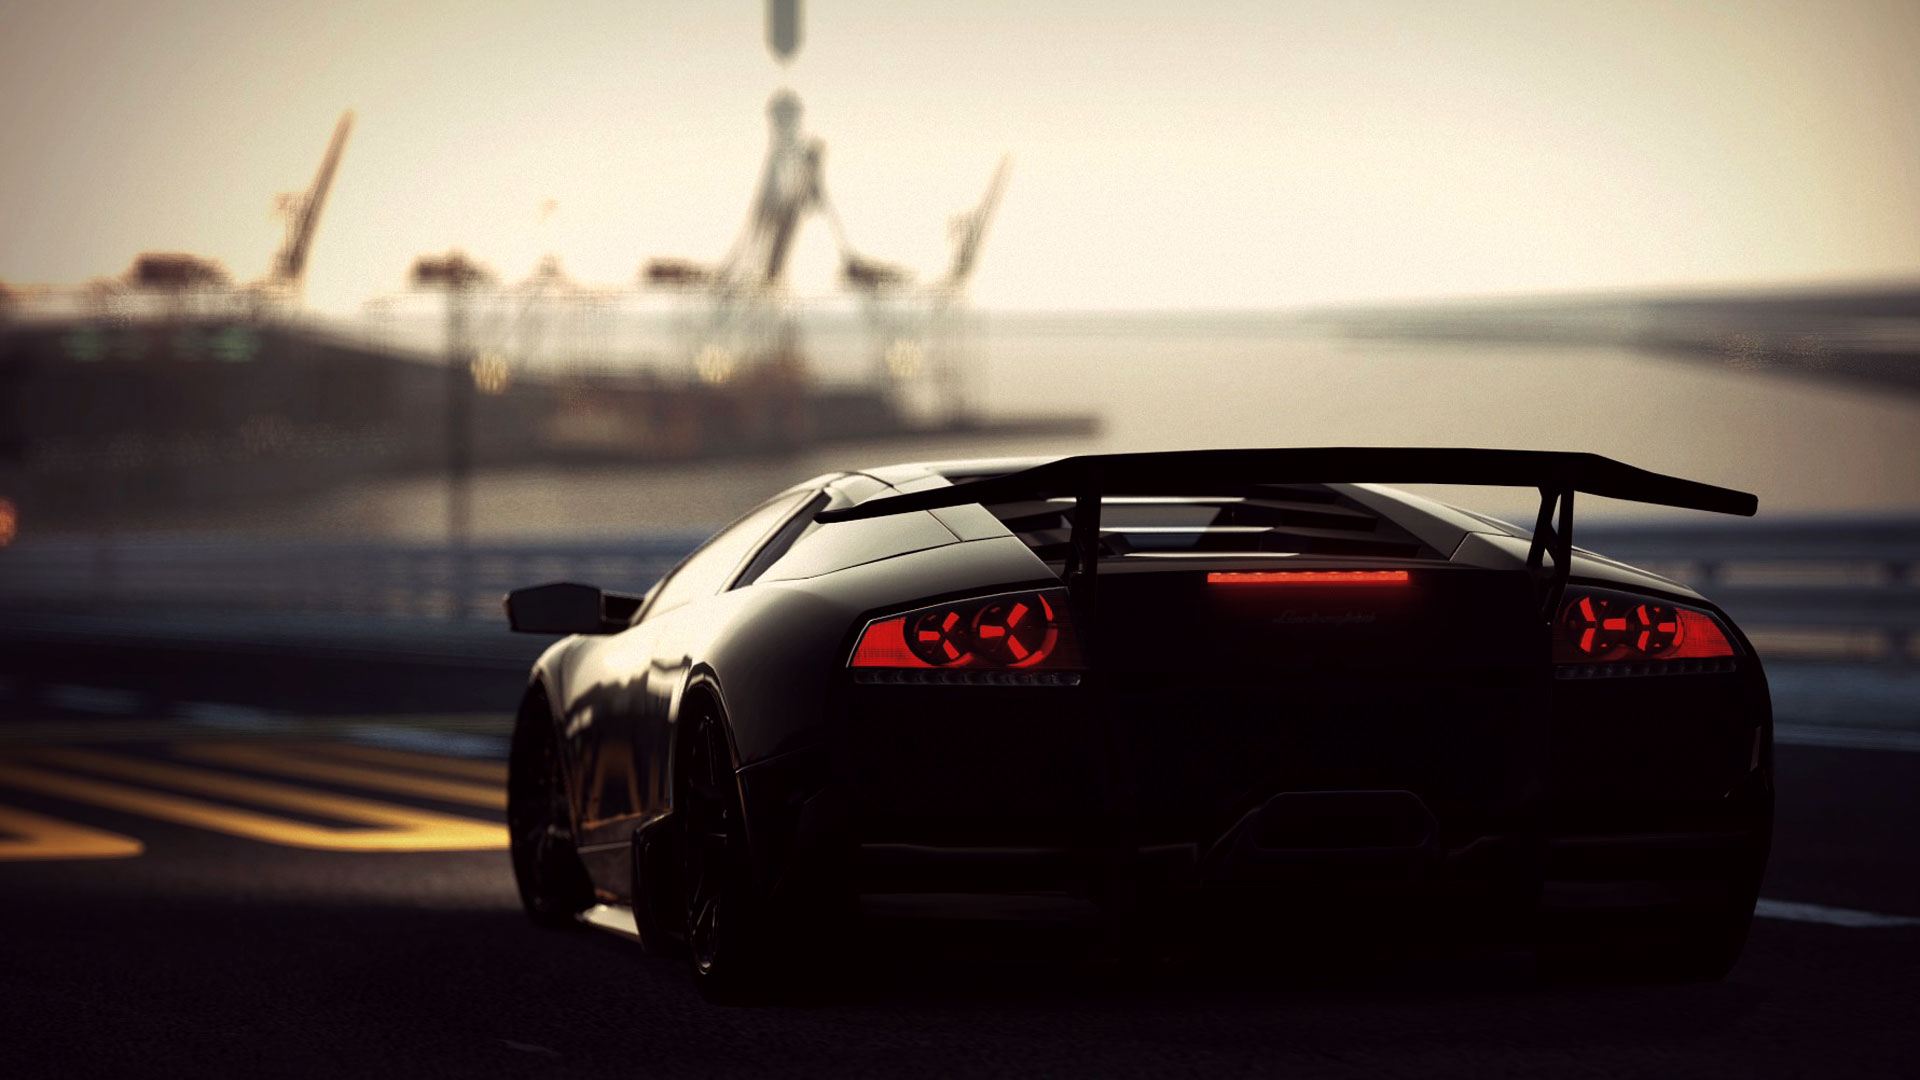 15 Excellent HD Lamborghini Wallpapers